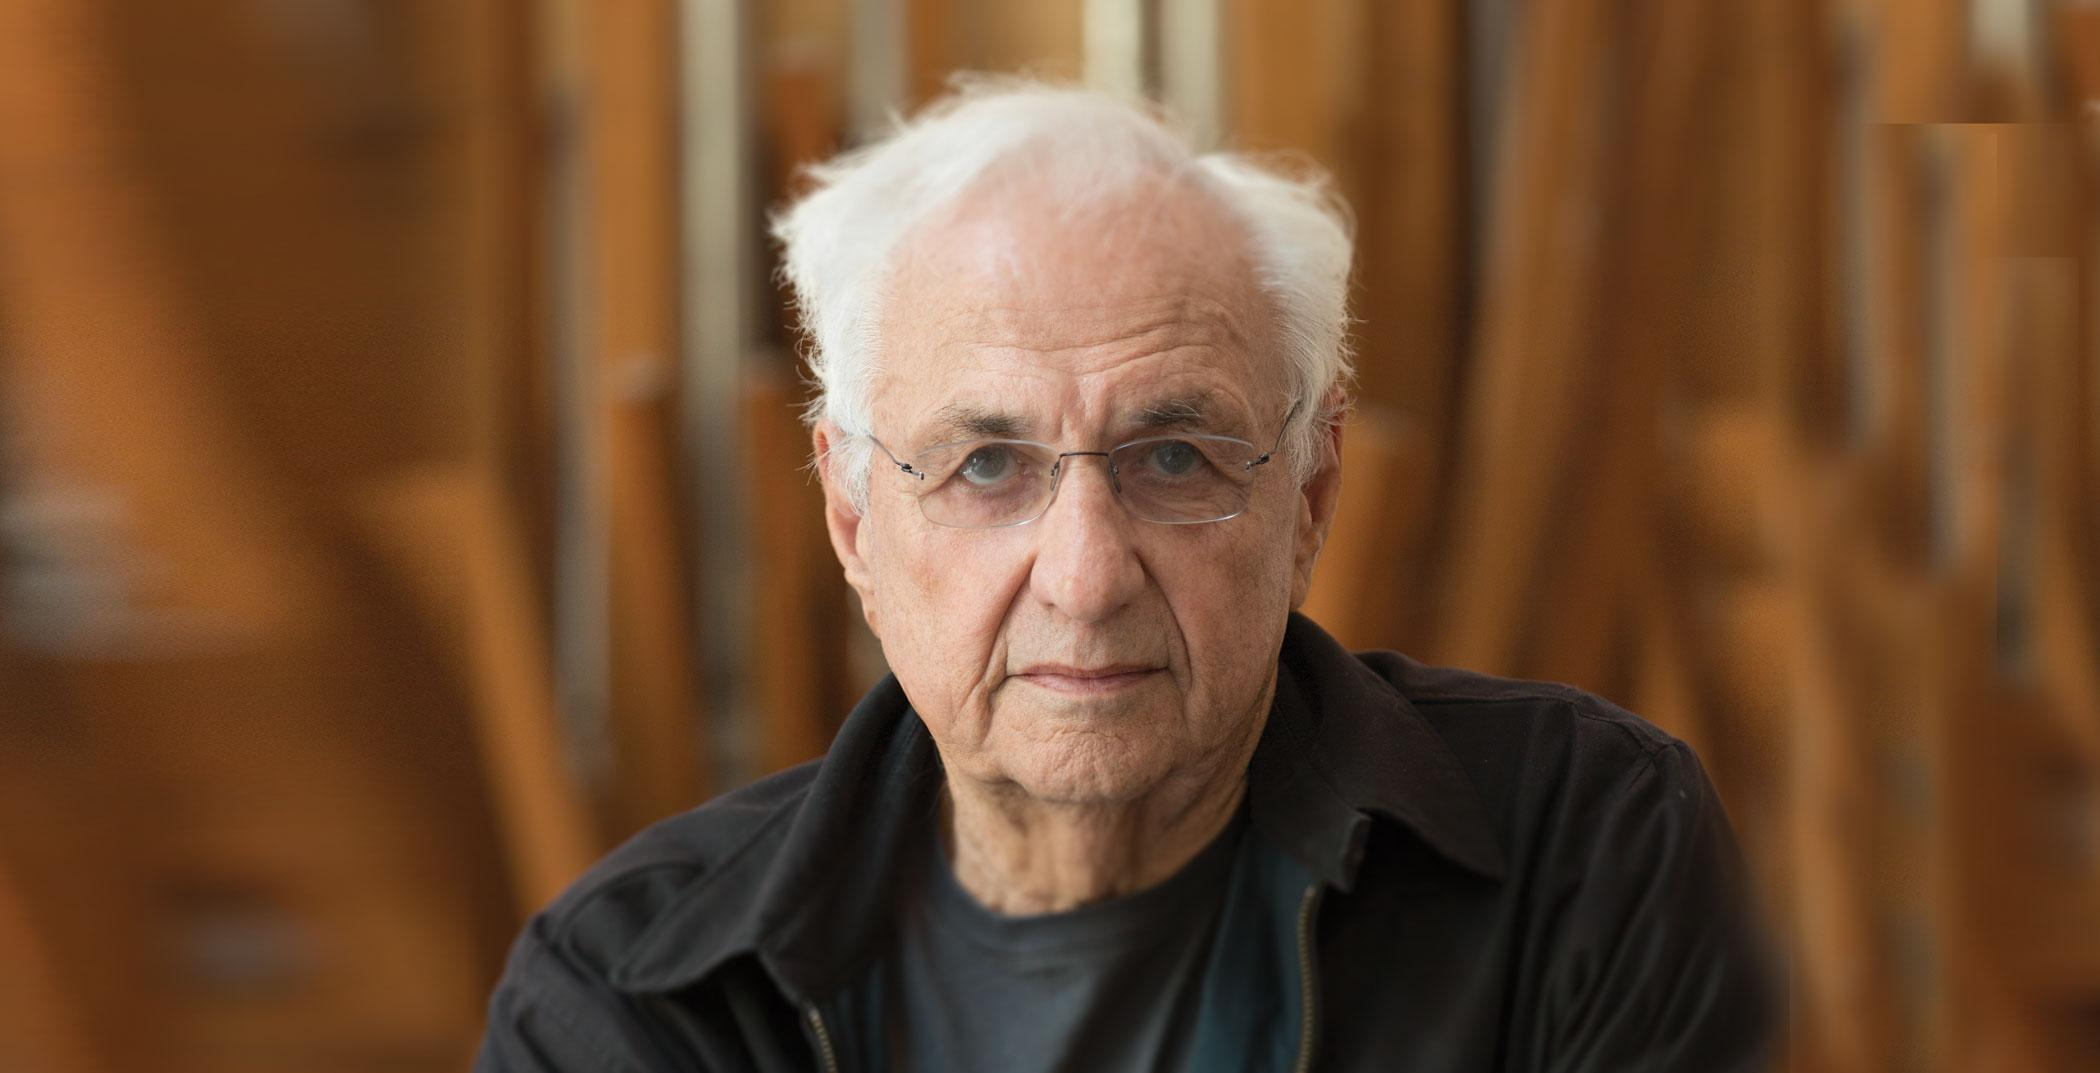 Frank Gehry, architect (Photo: Chad Slattery)